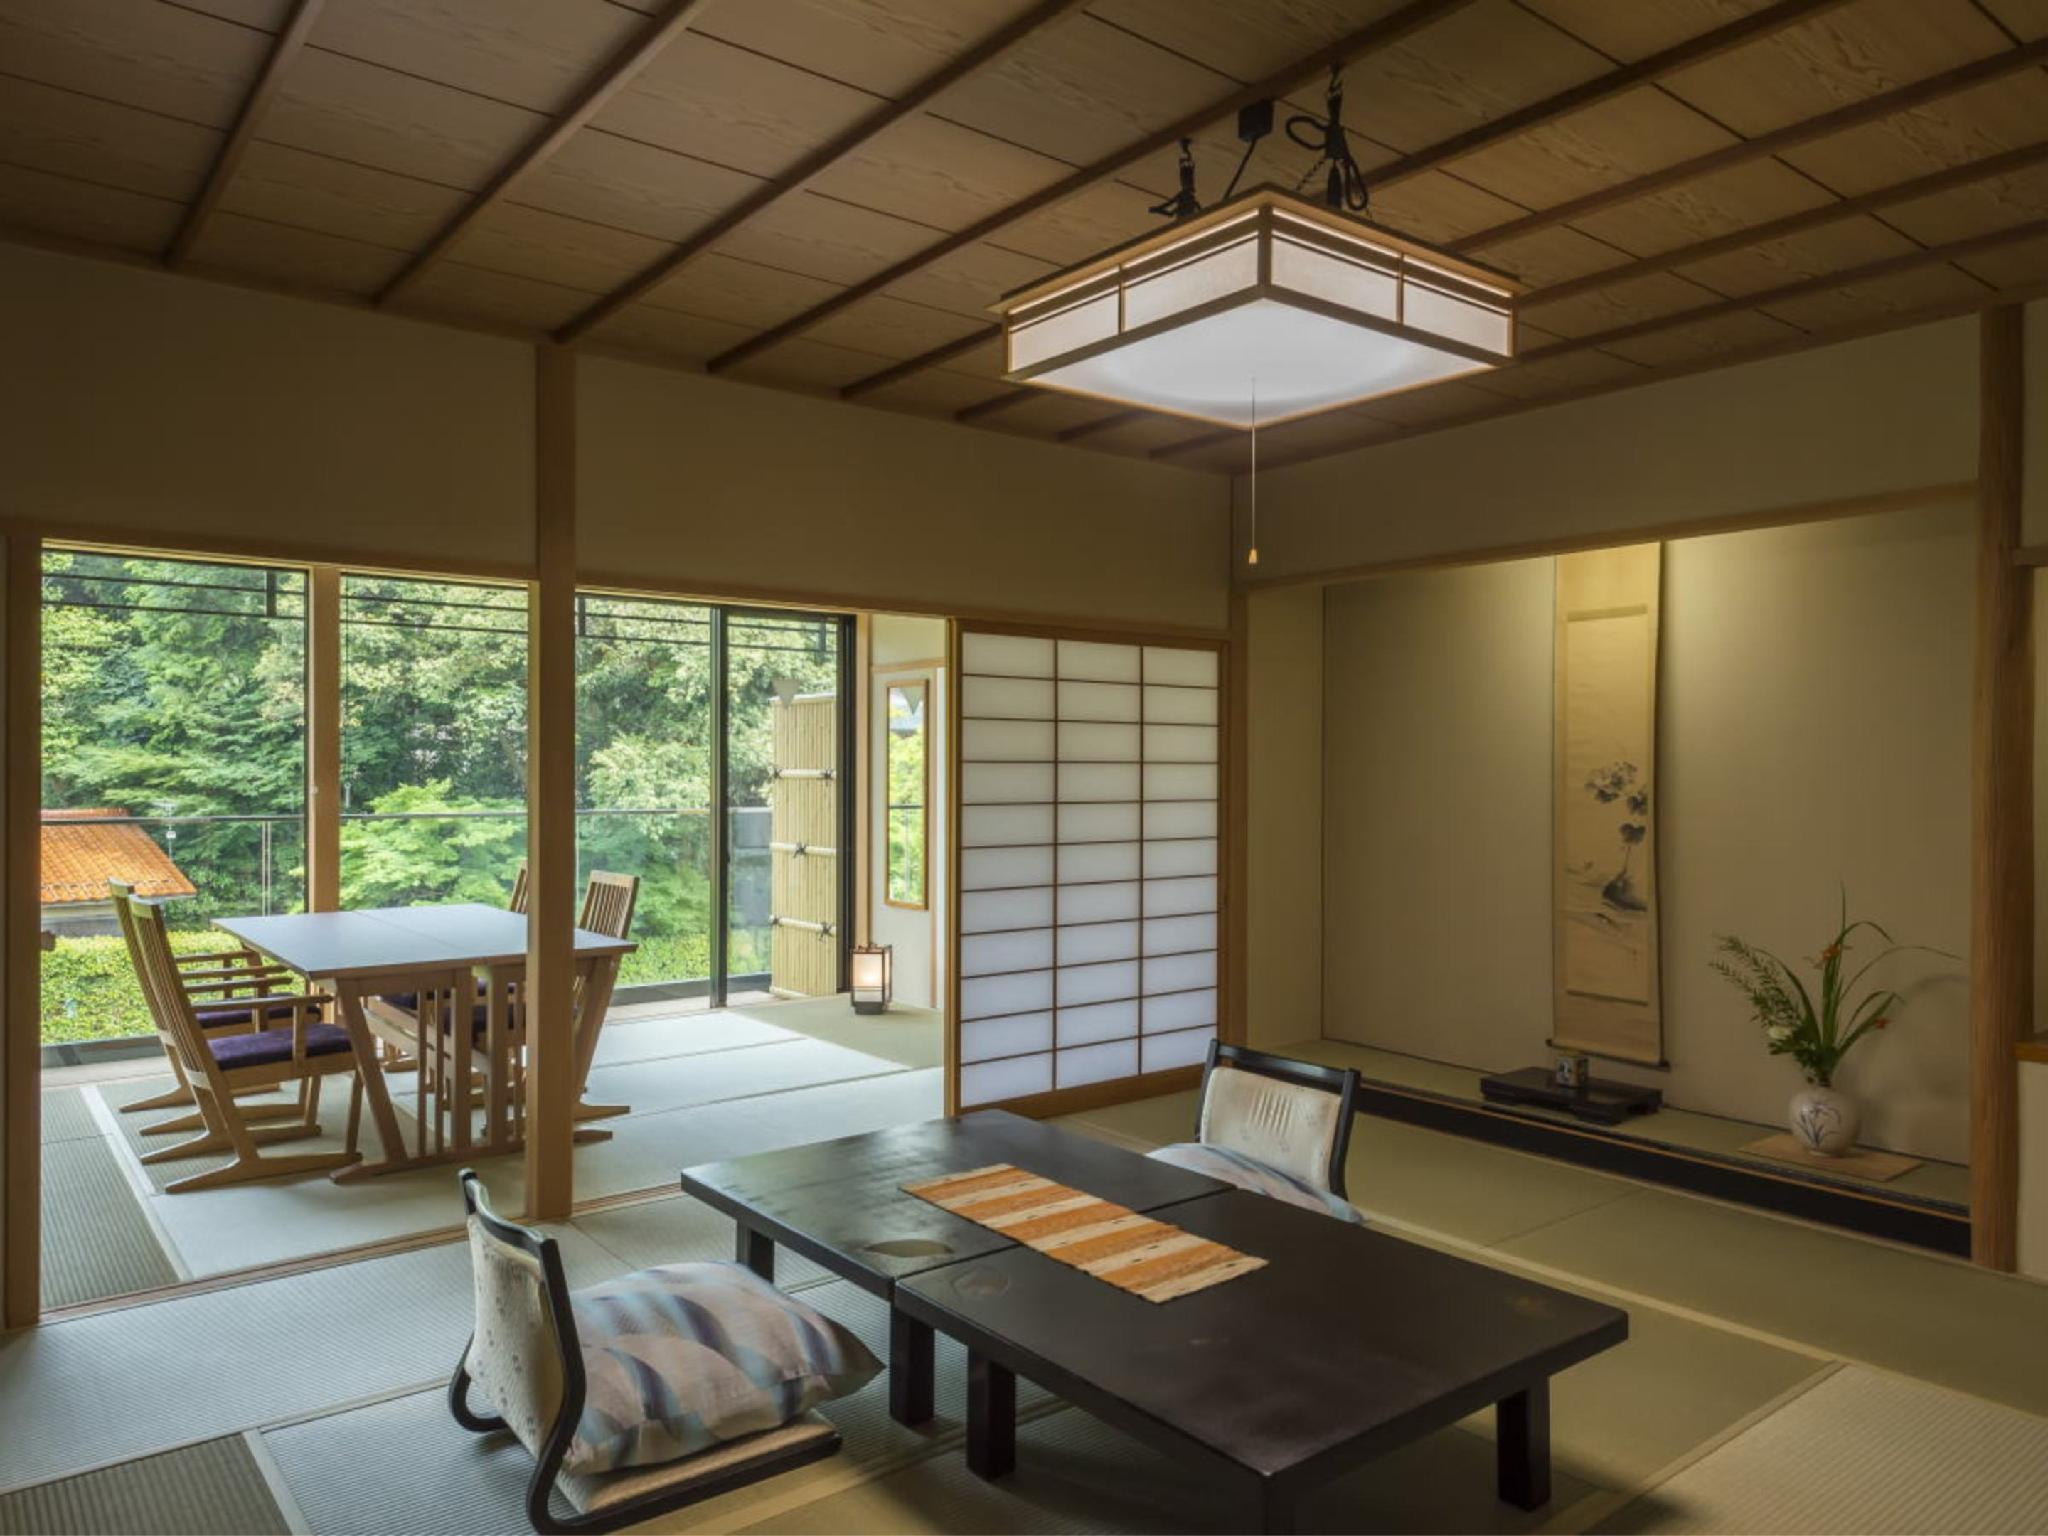 【古代紫】ひのき露天風呂付・和ベッド+ダイニング〈禁煙〉 (Japanese-style Room with Open-air Cypress Bath + Dining Room (Japanese-style Bed(s), Kodaimurasaki Type))